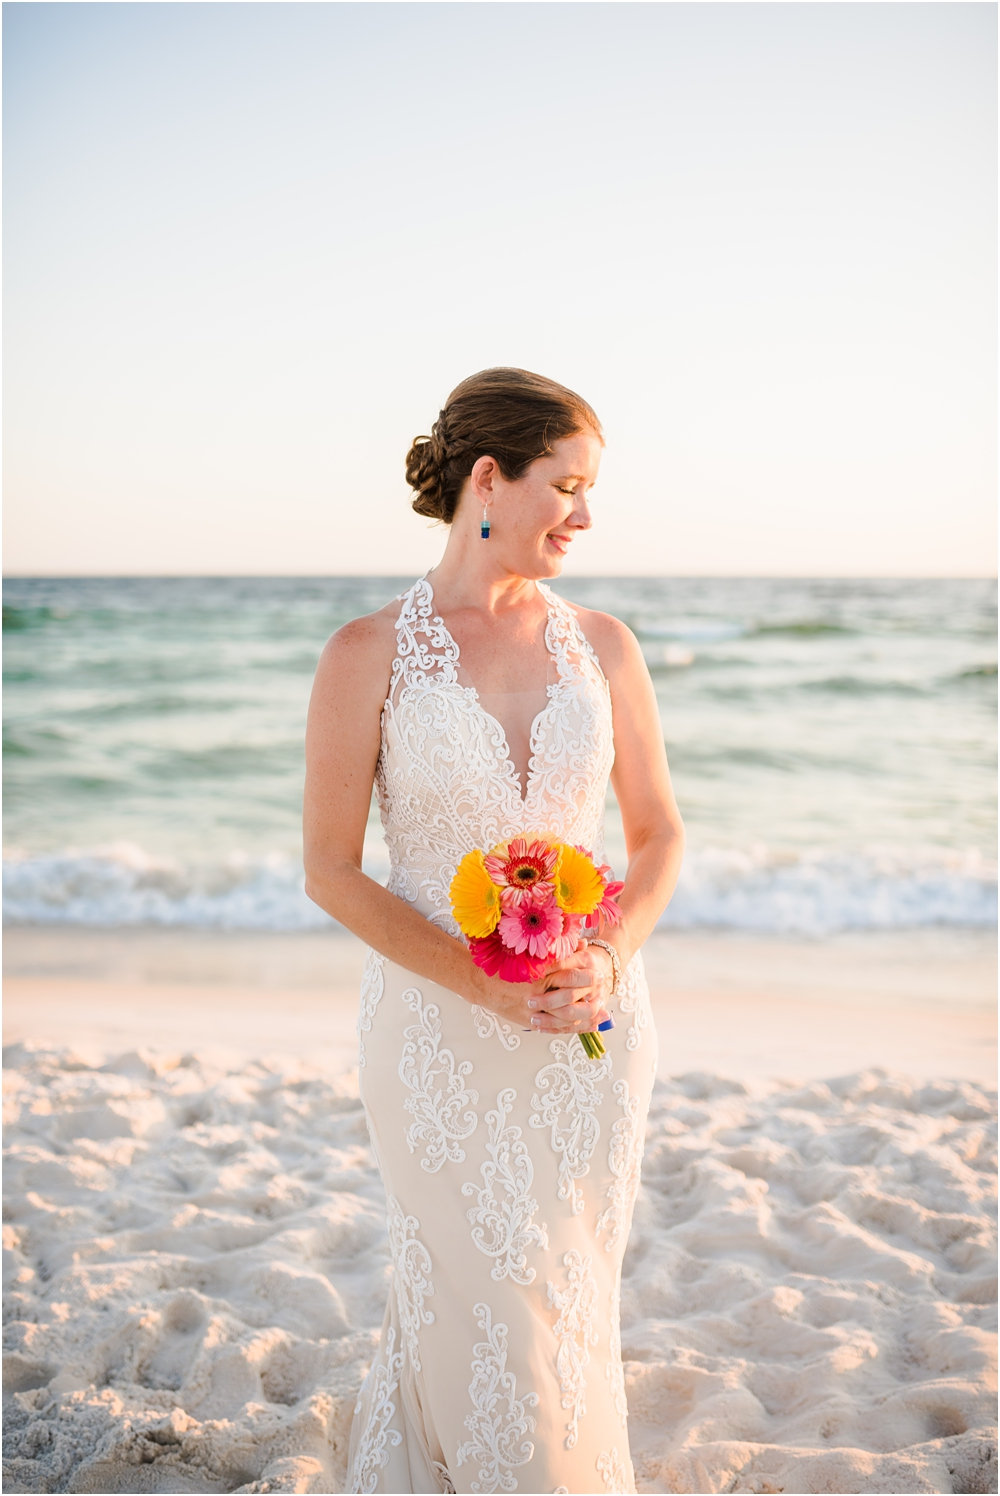 ledman-wedding-kiersten-stevenson-photography-30a-panama-city-beach-dothan-tallahassee-(479-of-763).JPG